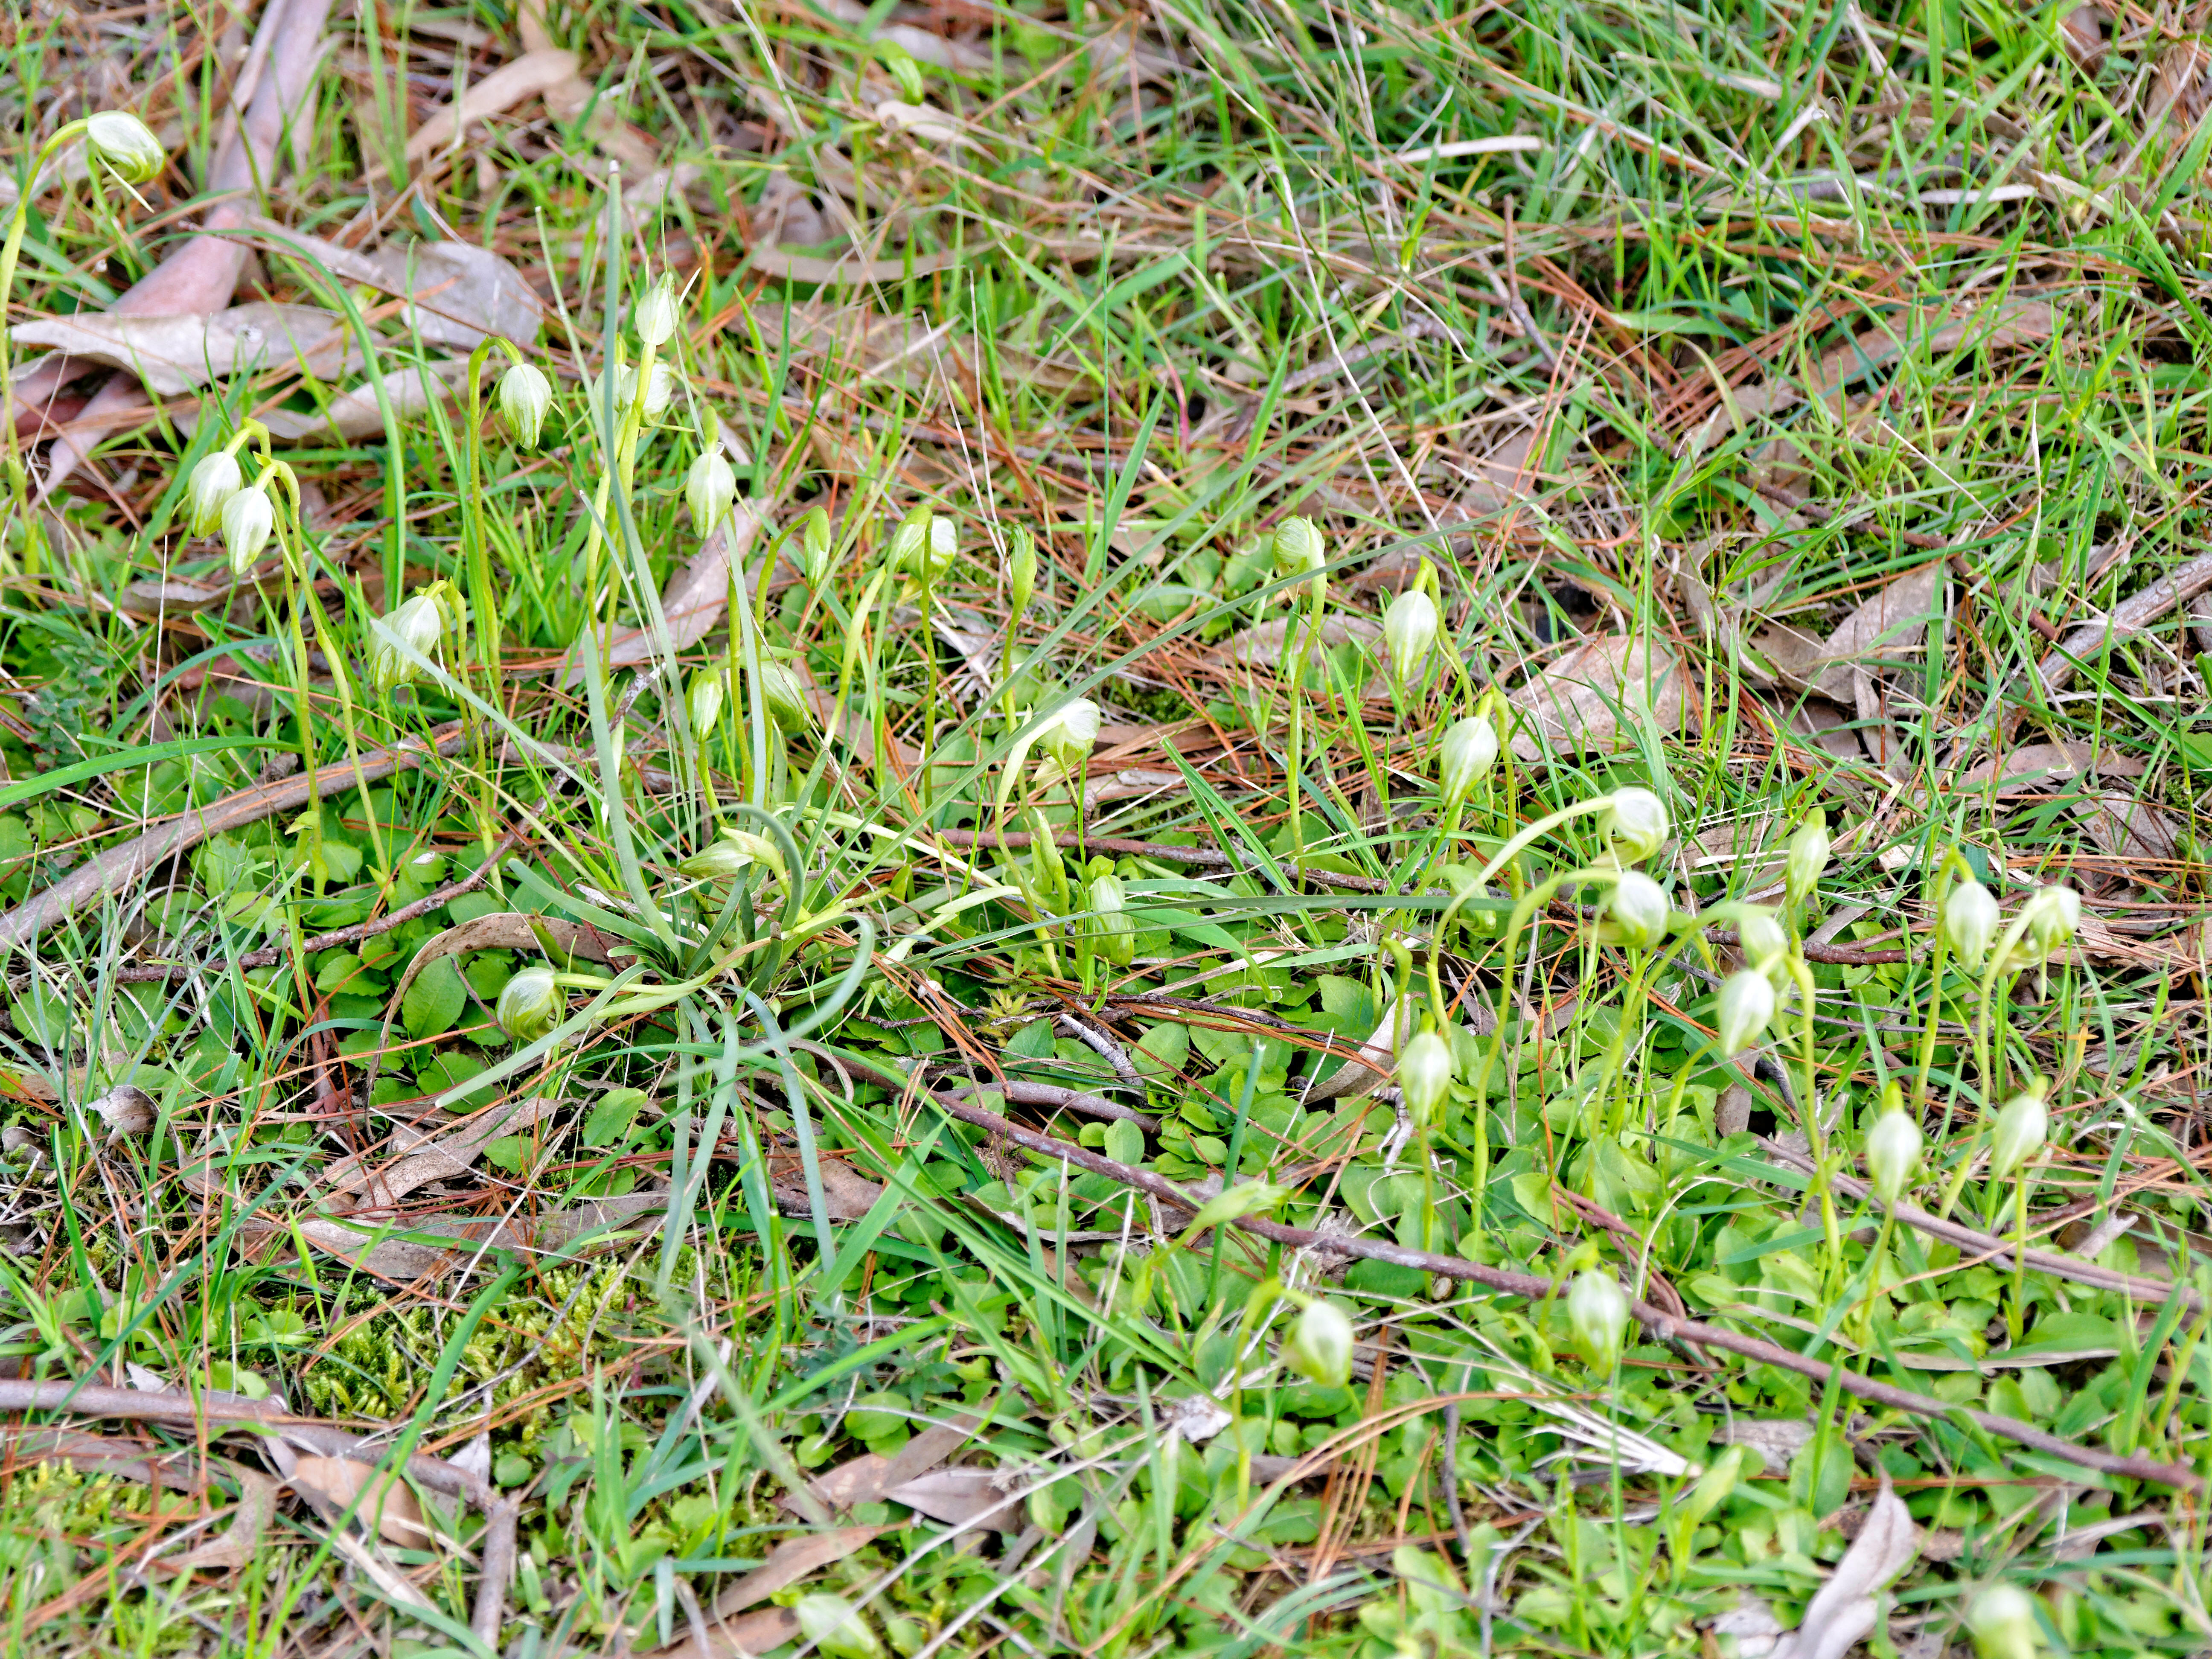 This should be Pterostylis.jpeg.  Is it missing?